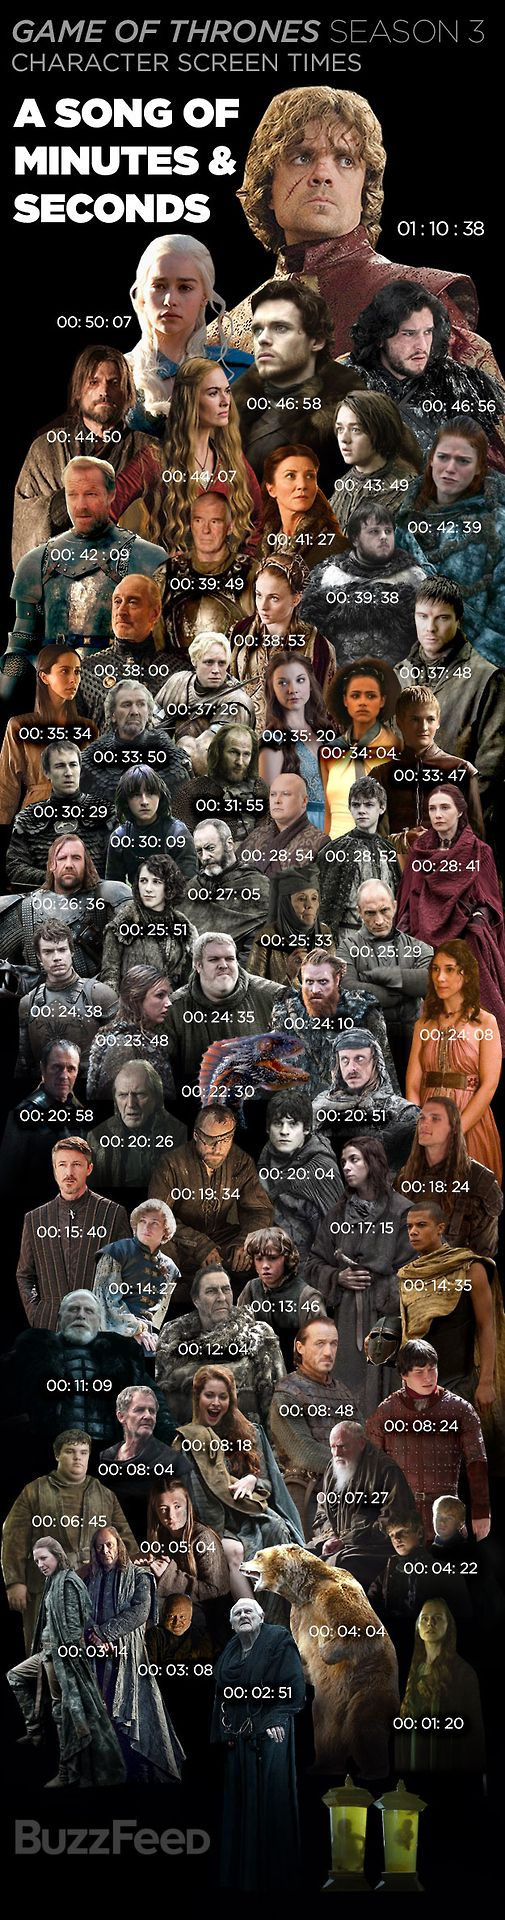 Game of Thrones Season 3 Character Screen Times Images by HBO; graphic by John Gara/BuzzFeed  more on: http://gameofthrones-fanart.tumblr.com/  #asoiaf #gameofthrones